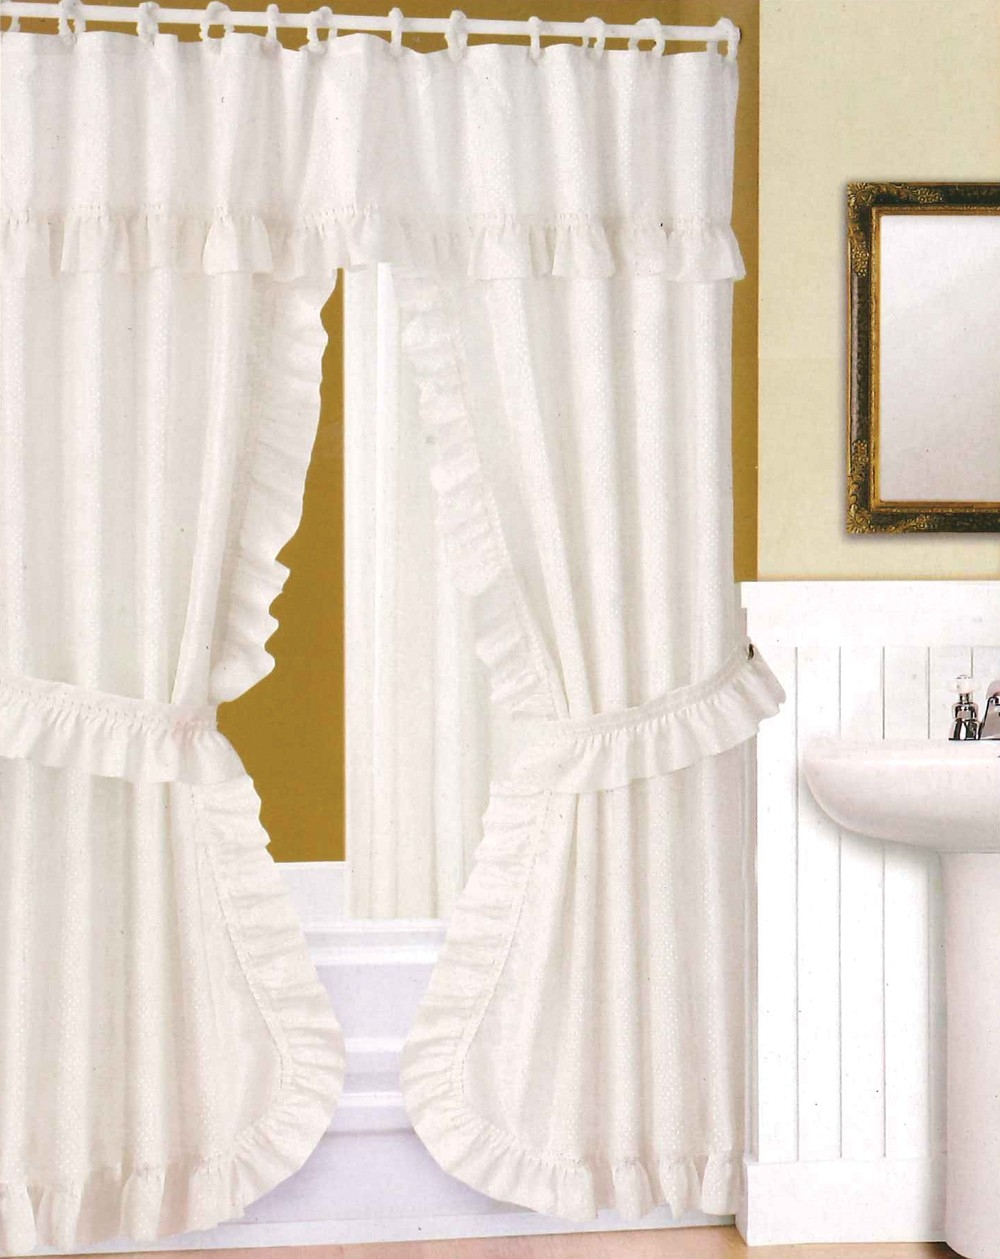 Bathroom Awesome White Ruffle Shower Curtain For Excellent With Regard To Peach Colored Curtains (Image 6 of 25)